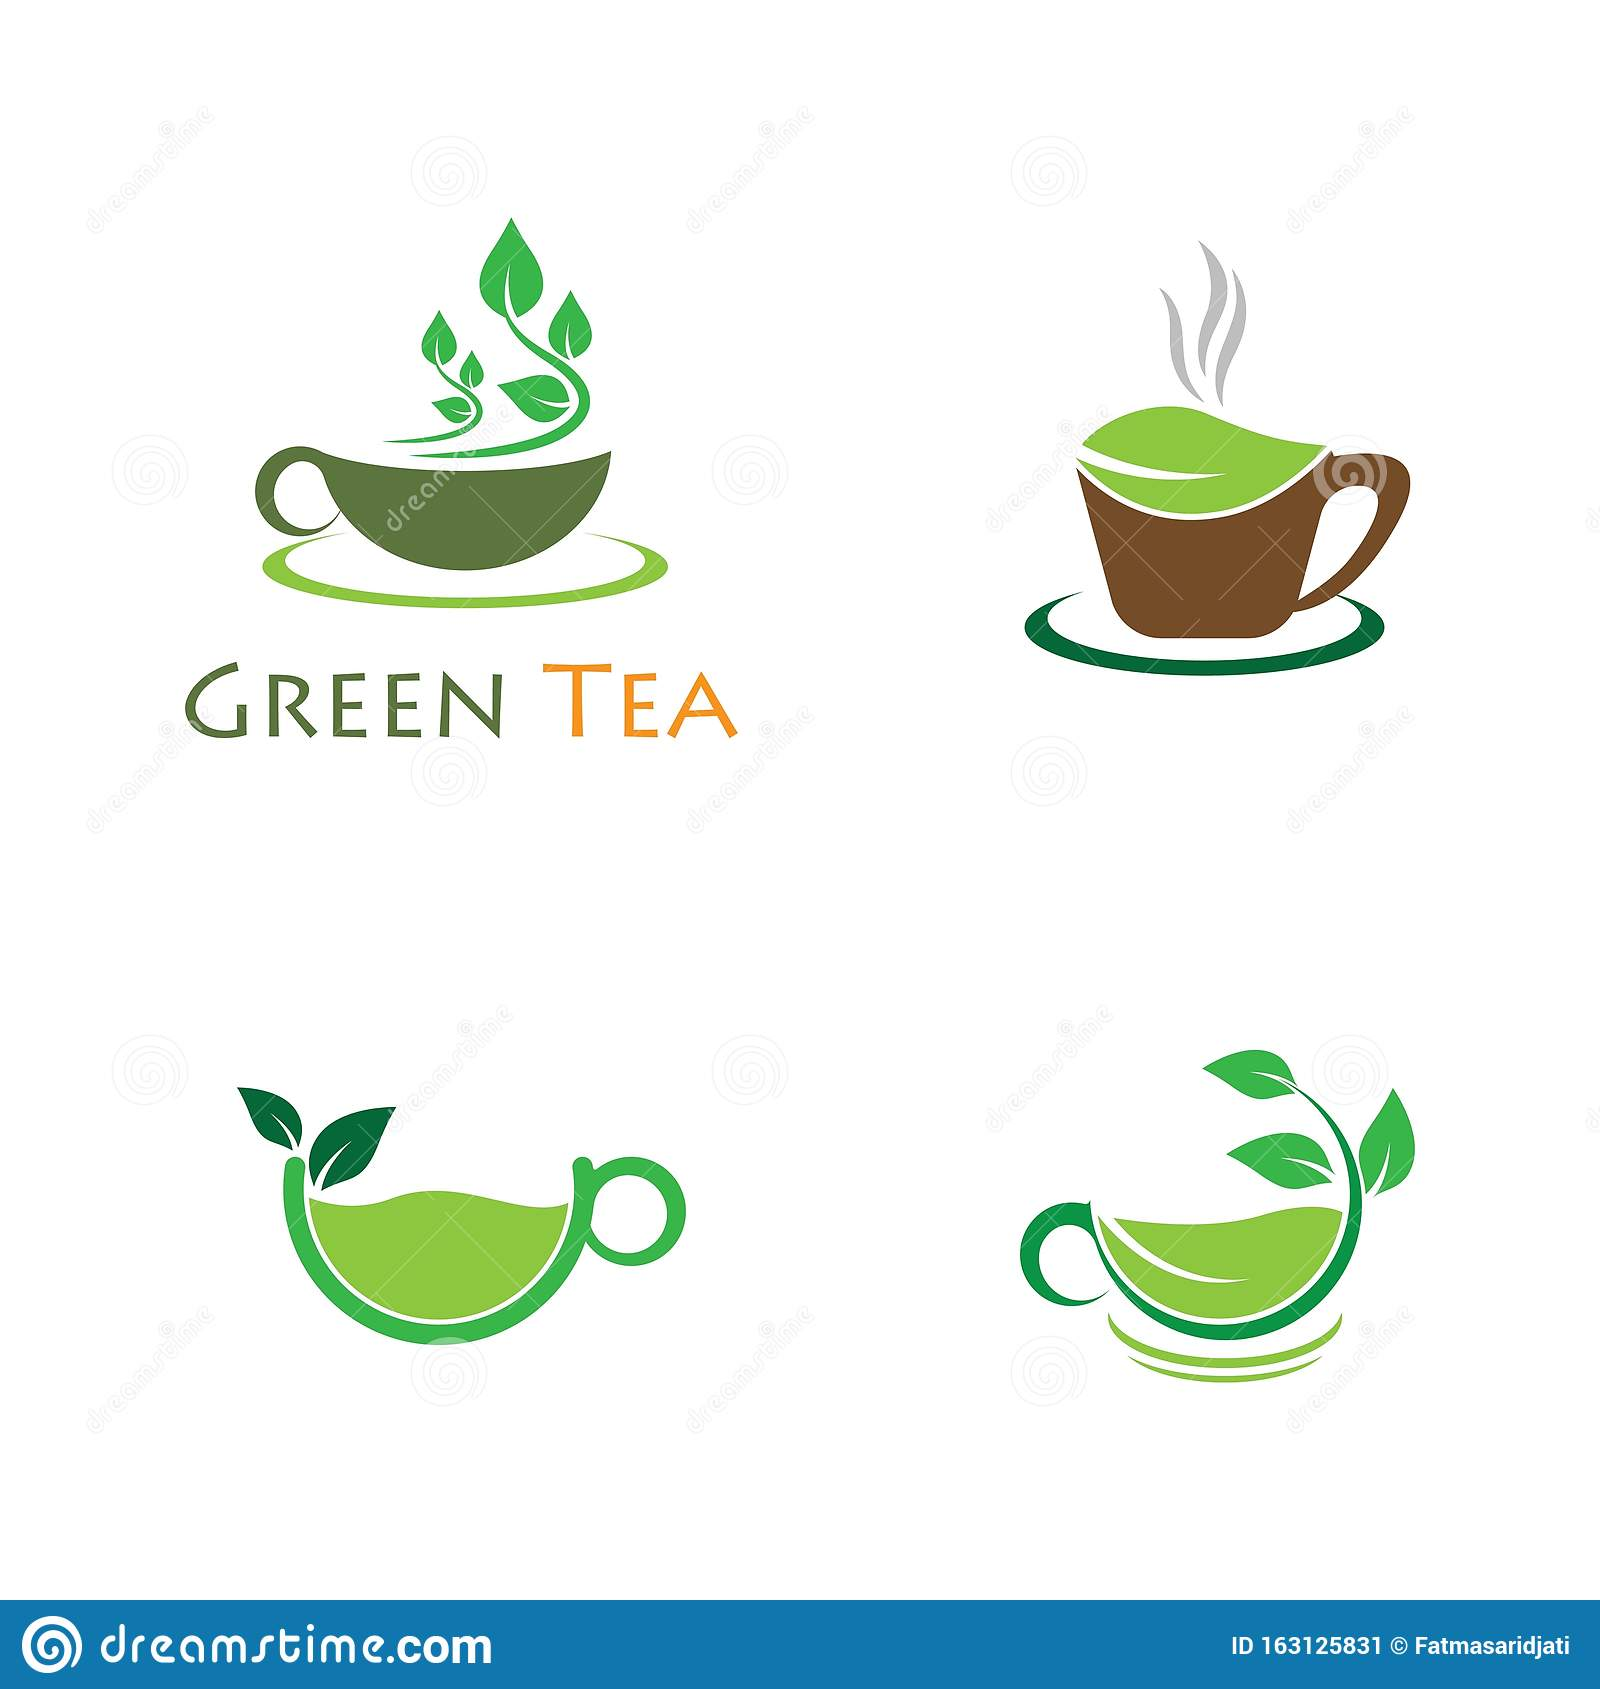 green tea vector logo illustration stock vector illustration of concept cafeteria 163125831 https www dreamstime com green tea vector logo illustration cup template icon design image163125831